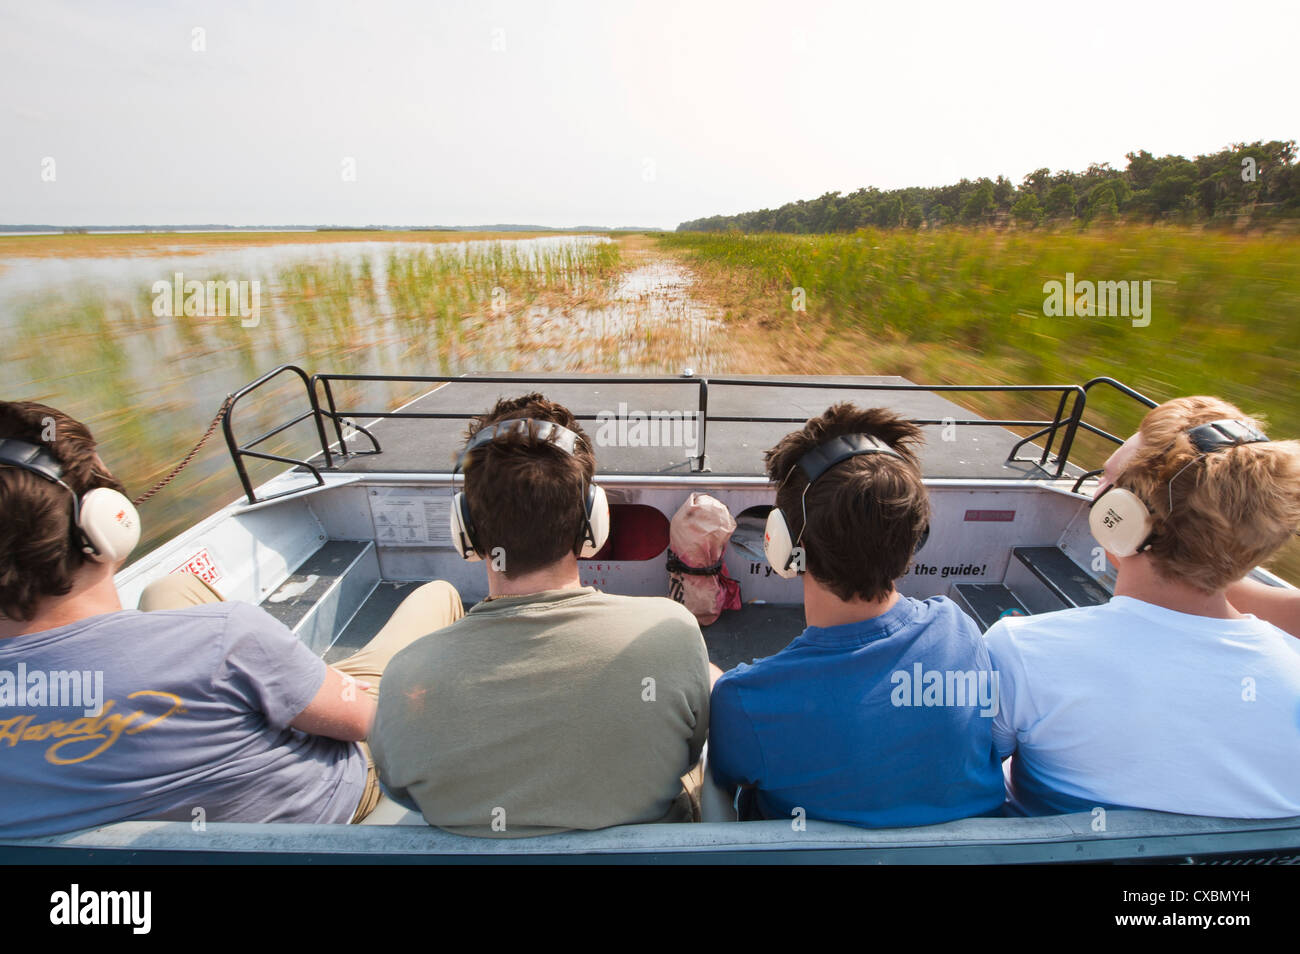 Air Boats Stock Photos Amp Air Boats Stock Images Alamy